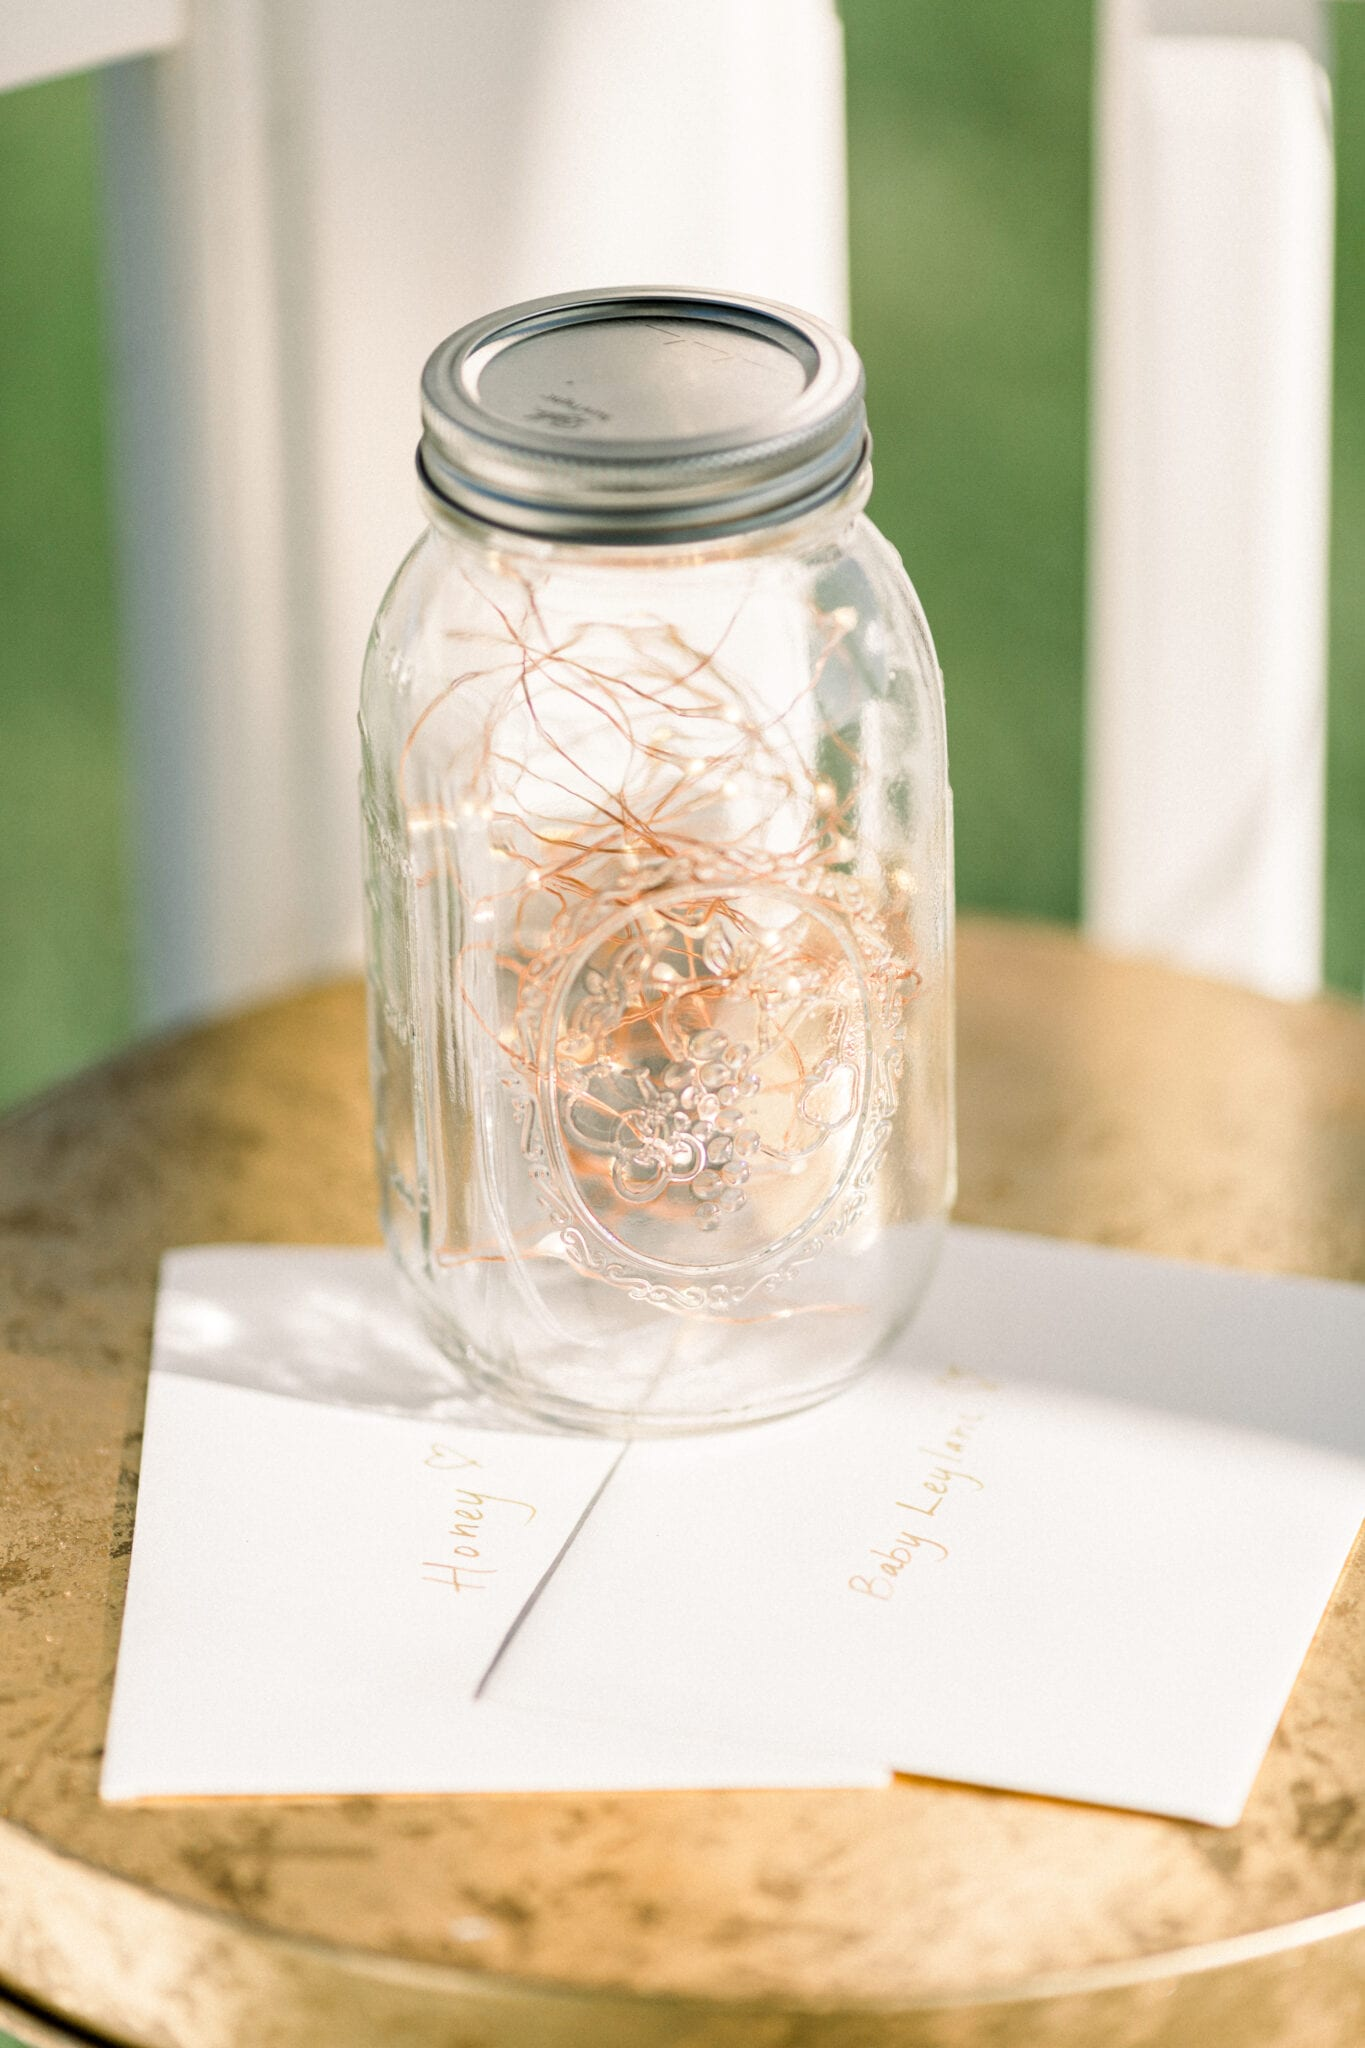 Fairy lights in jar with letters